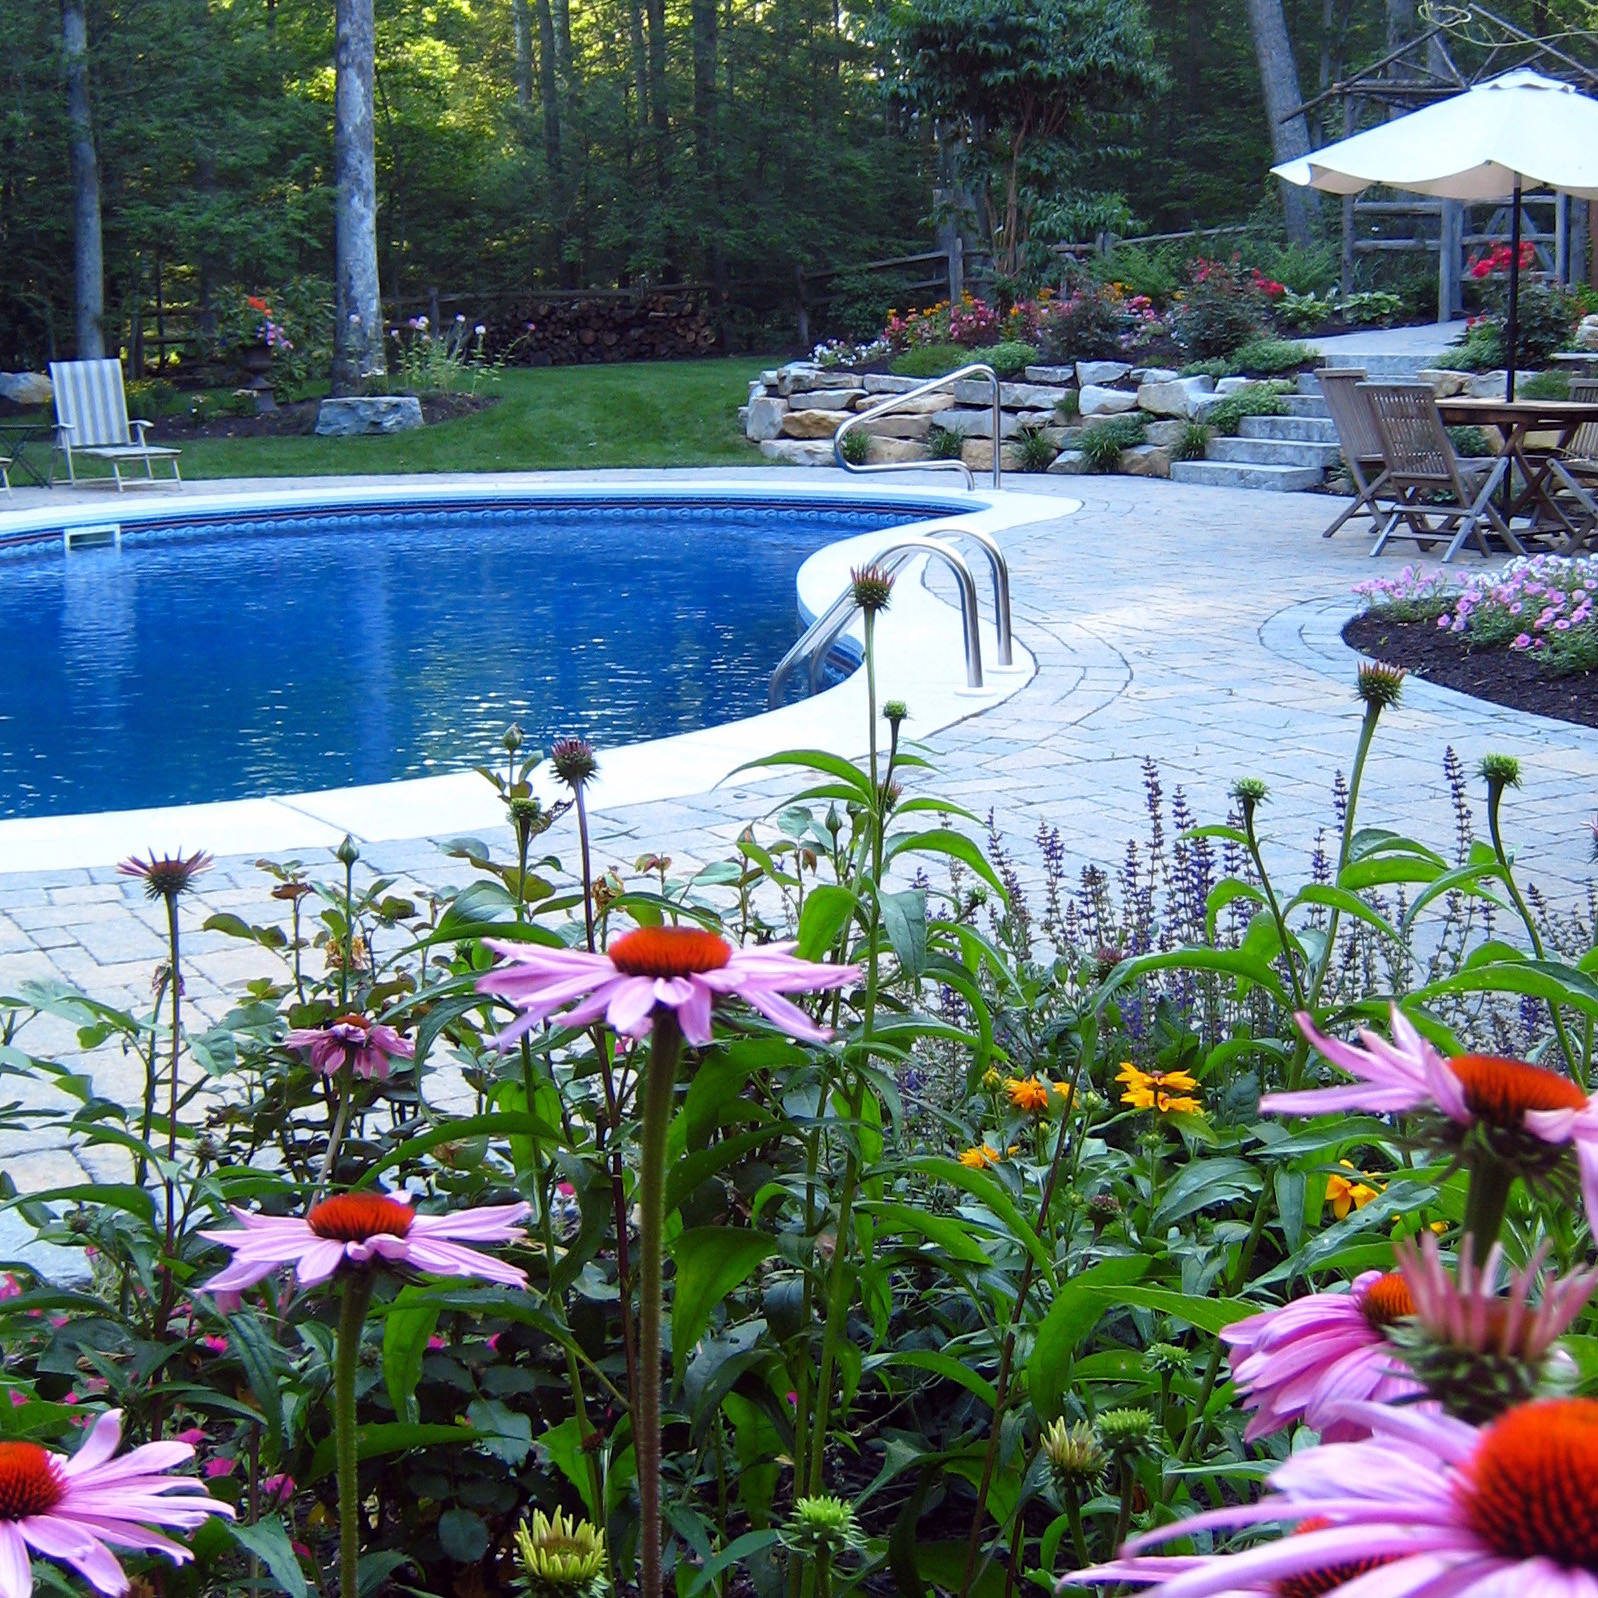 With over 20 years of experience, MasterPLAN is able to create beautiful outdoor living spaces to complement all types of landscapes.